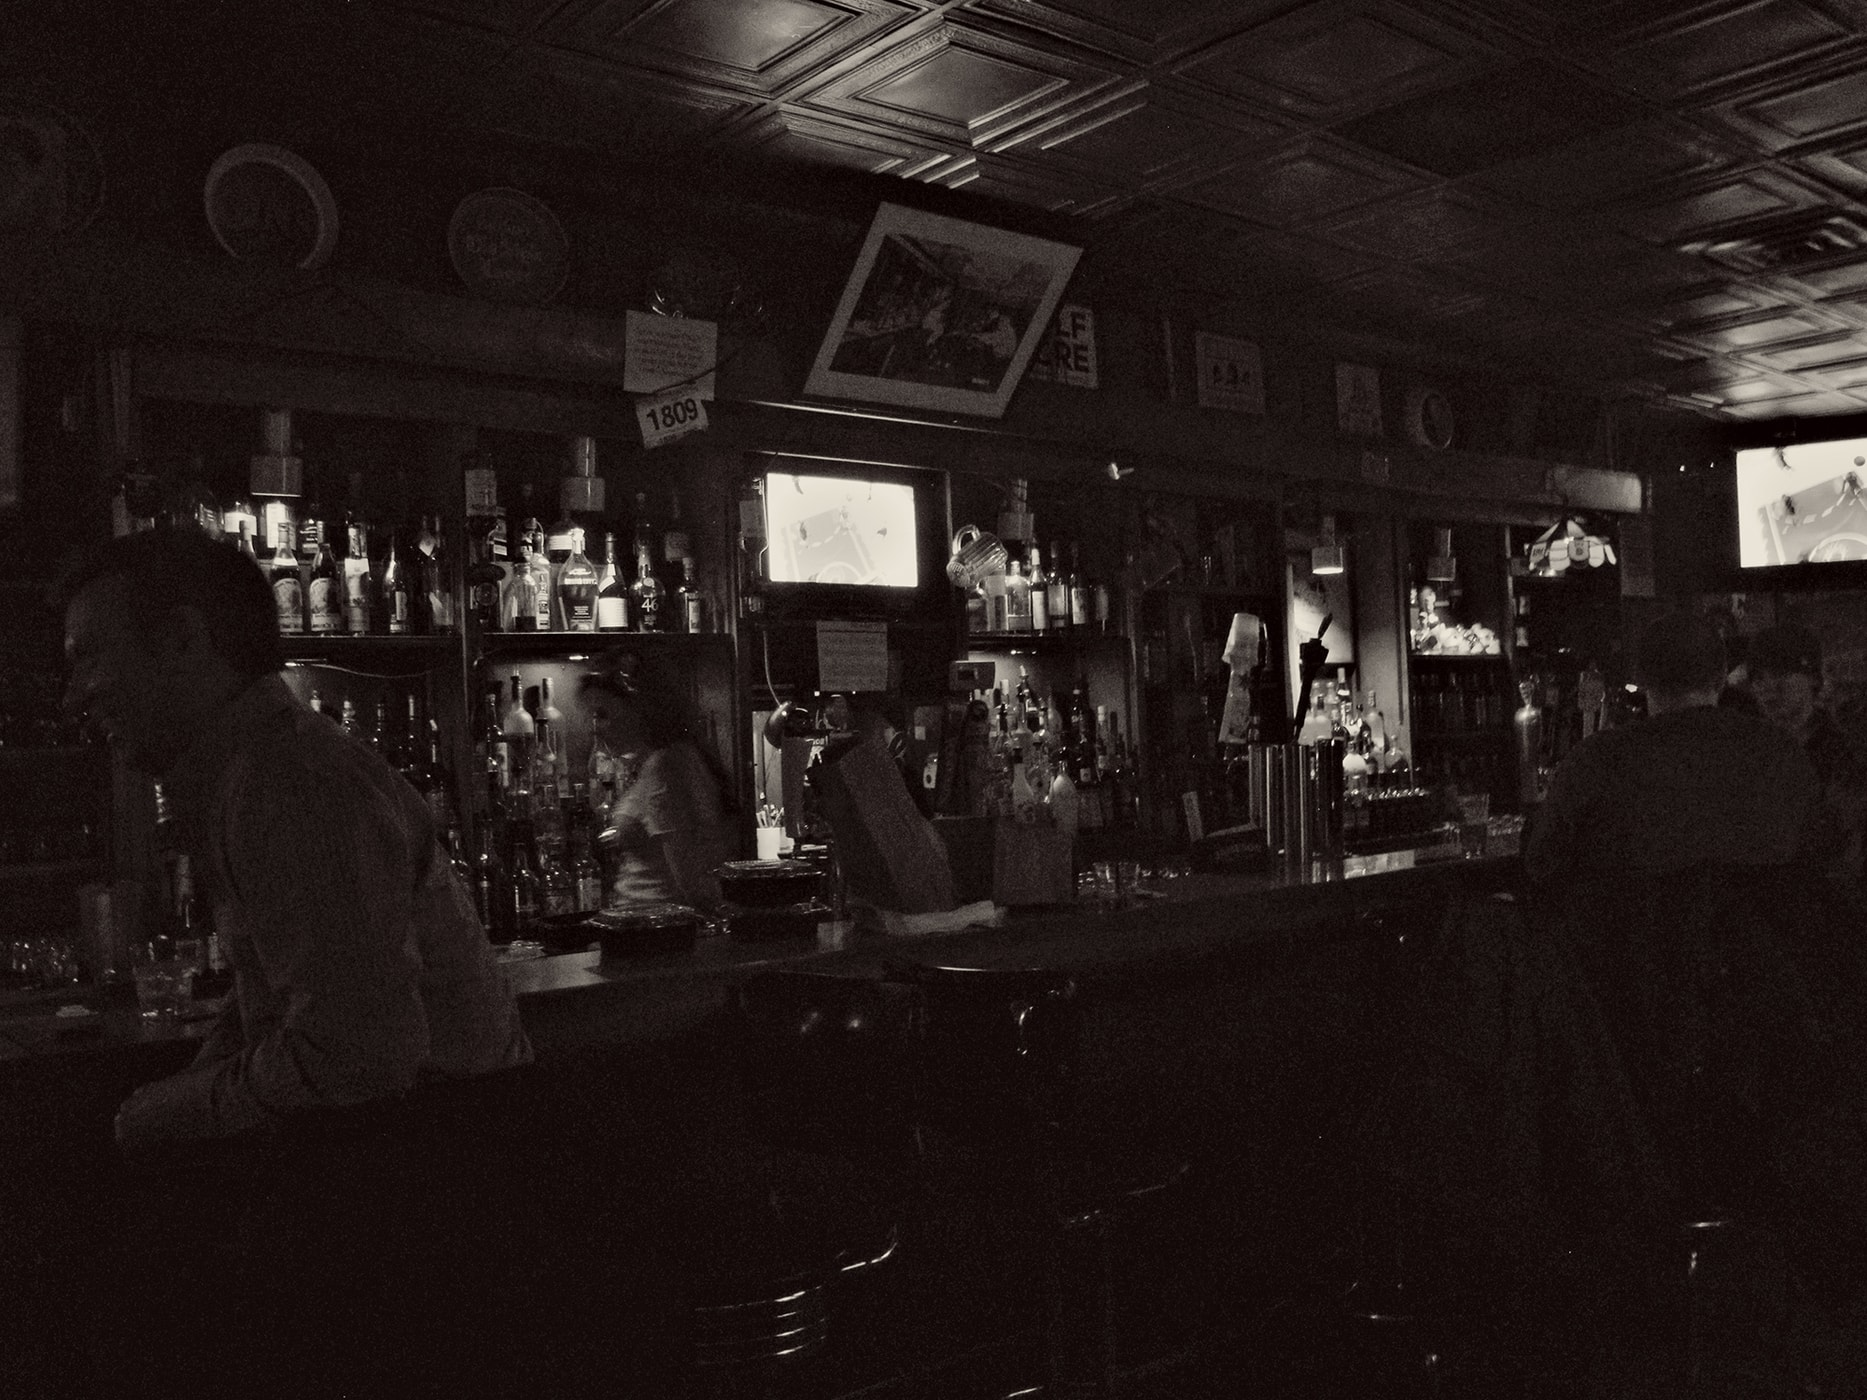 Drinking on Christmas at Jake's bar in Chicago, Illinois